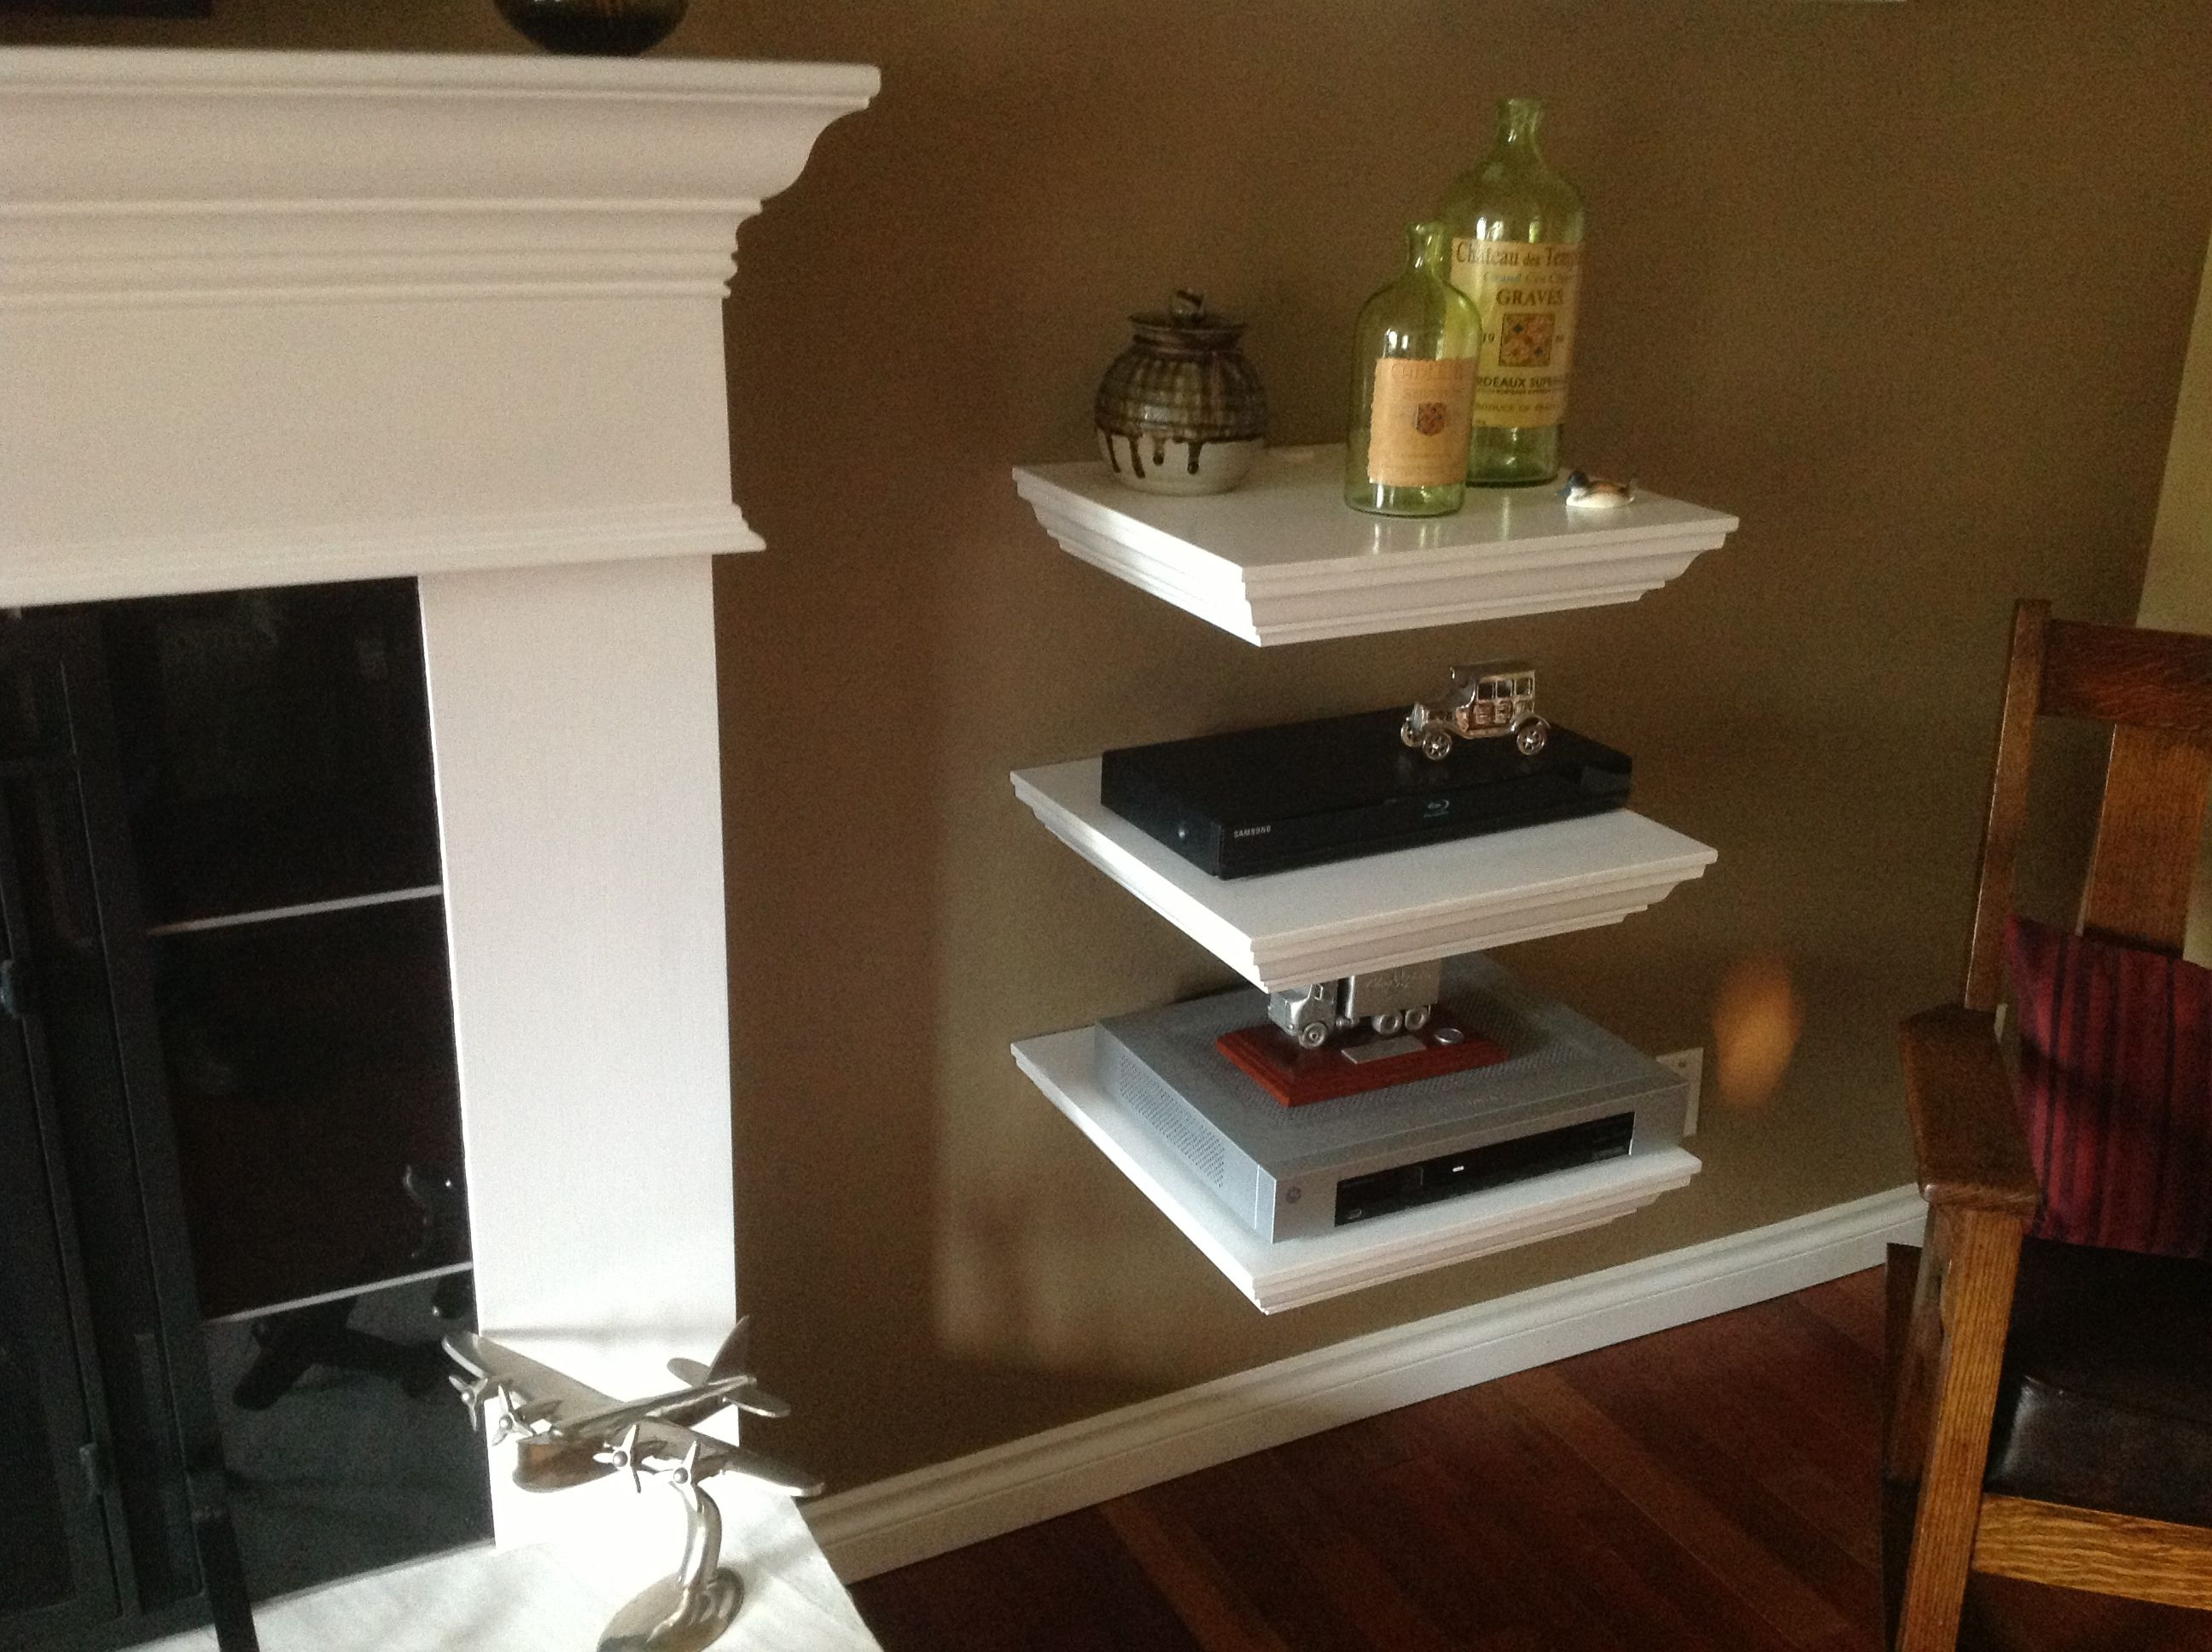 home entertainment shelf system built all cables down into the corner floating for cable box hollow out back large circuit breaker type other side log burner entry bench and